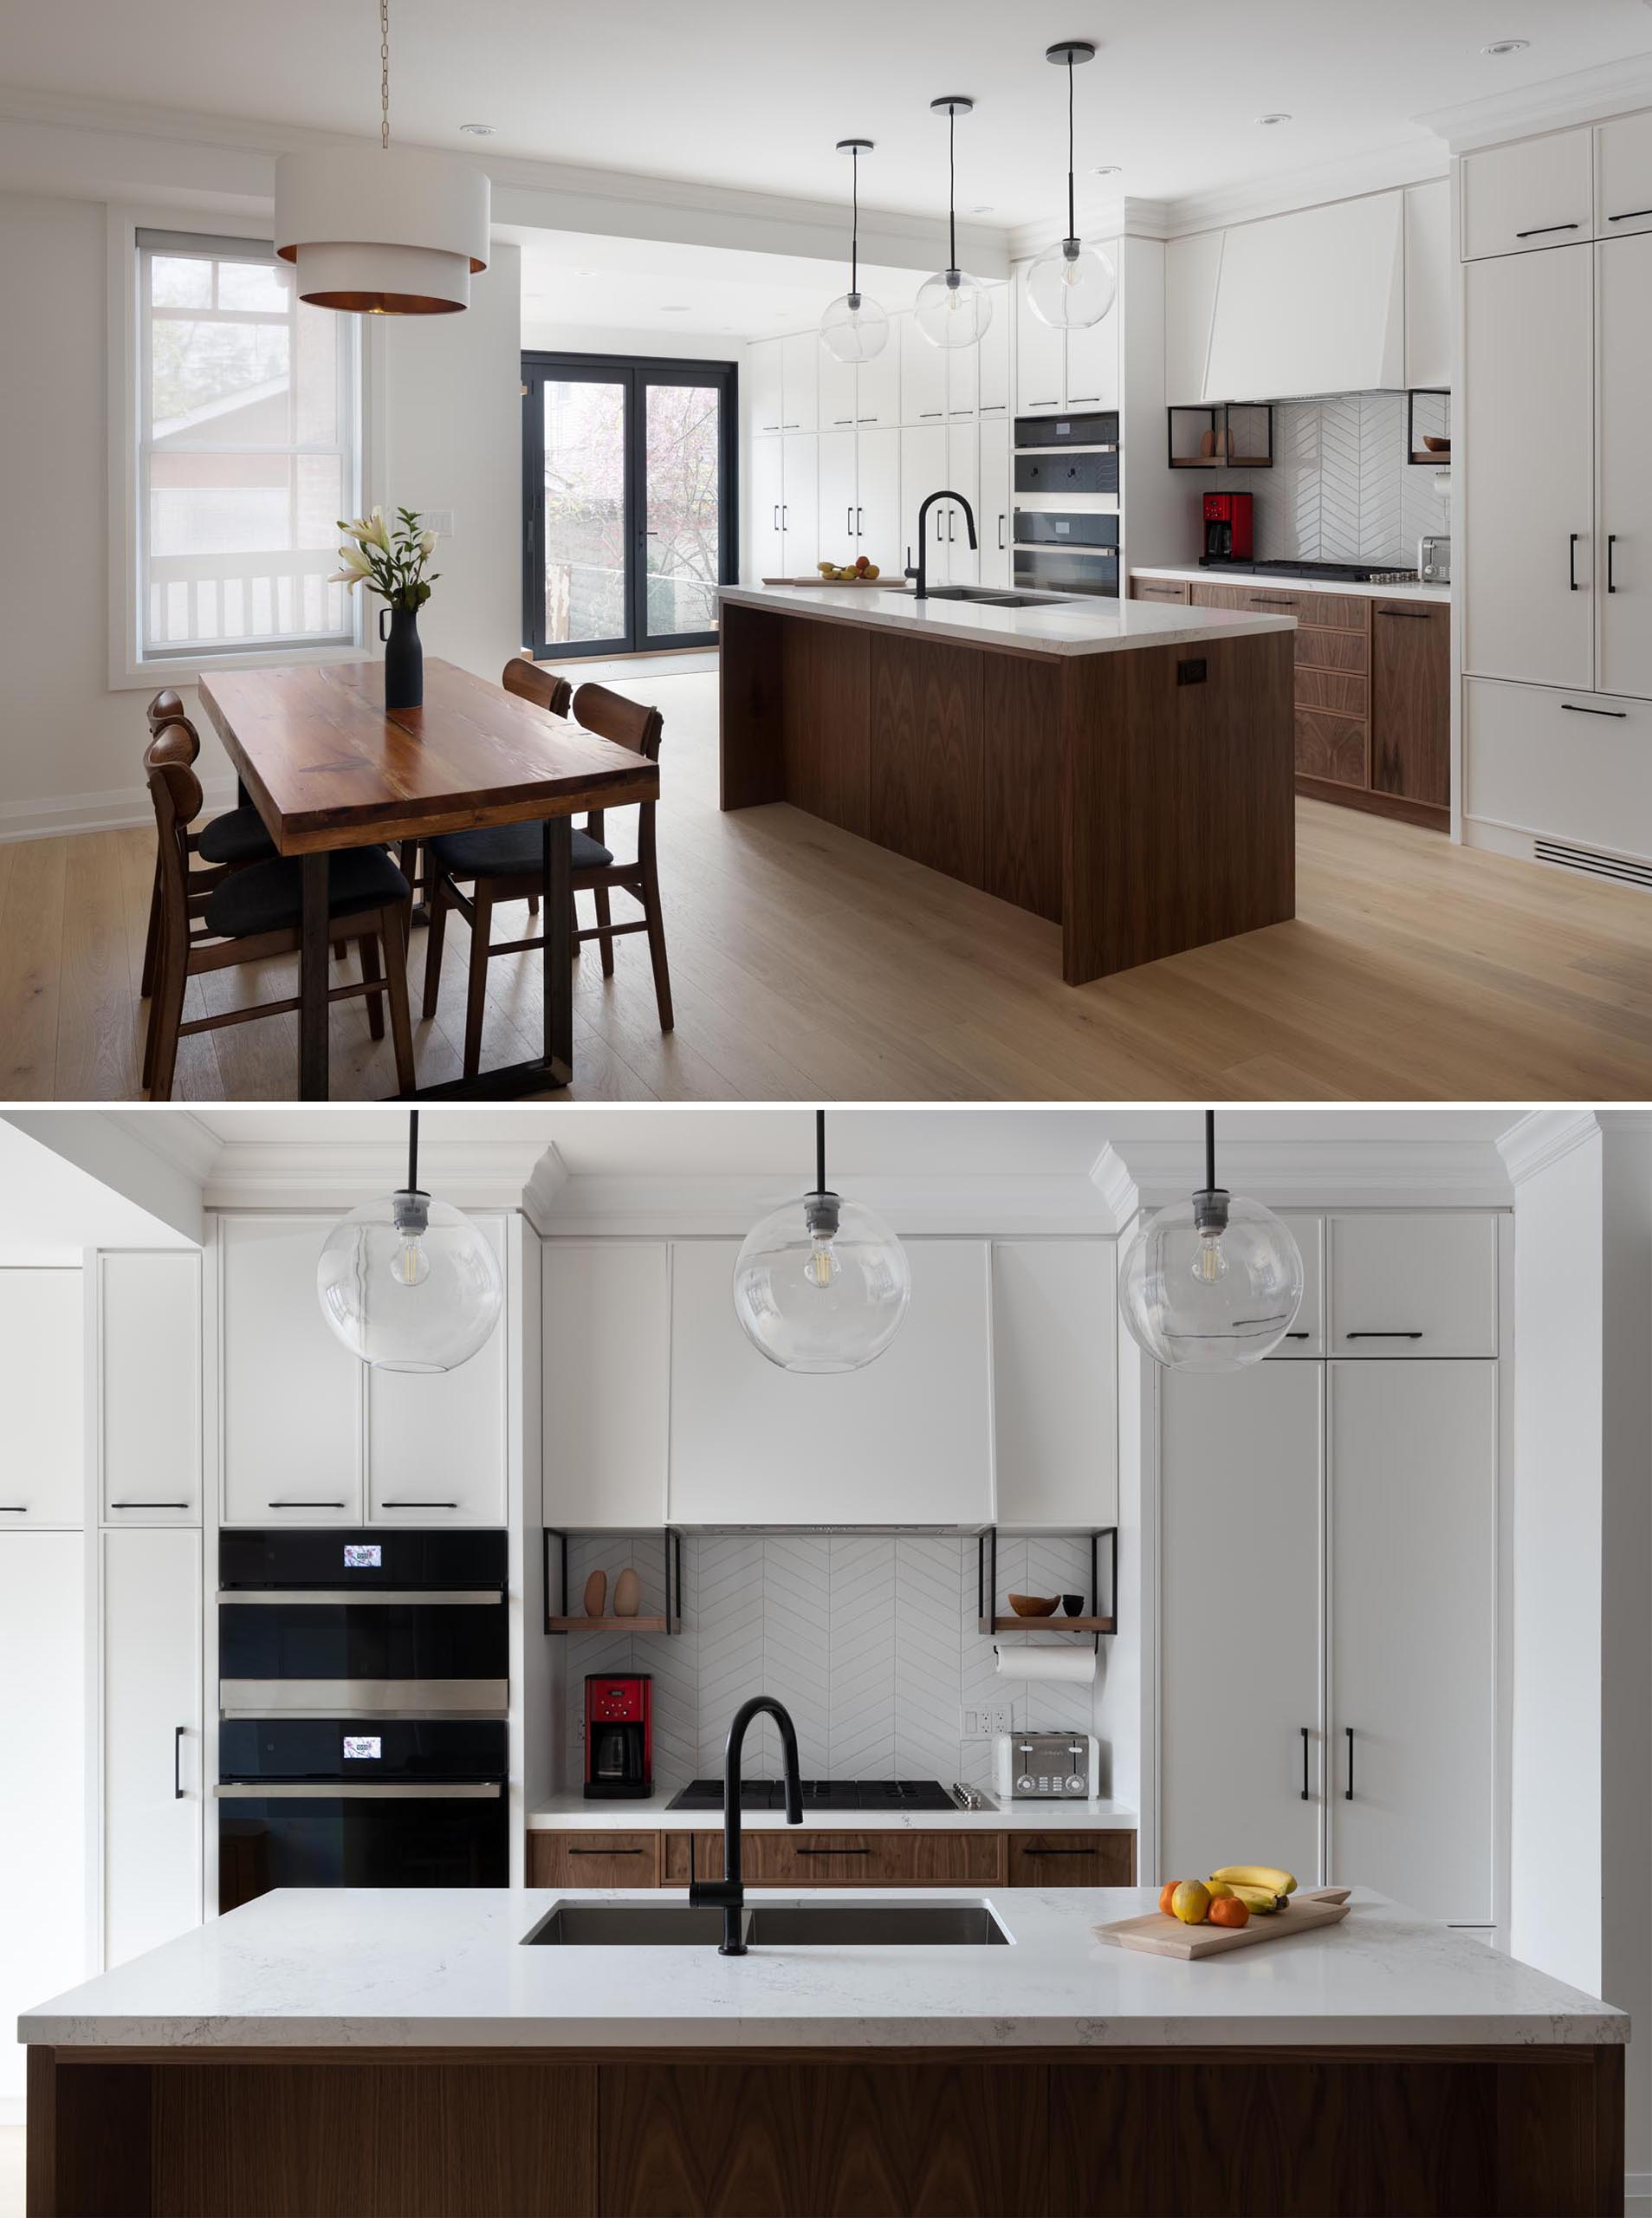 This modern kitchen includes built-in appliances, like a concealed fridge and dishwasher, as well as plenty of storage for baking items, a pantry, garbage and recycling, and cleaning supplies.